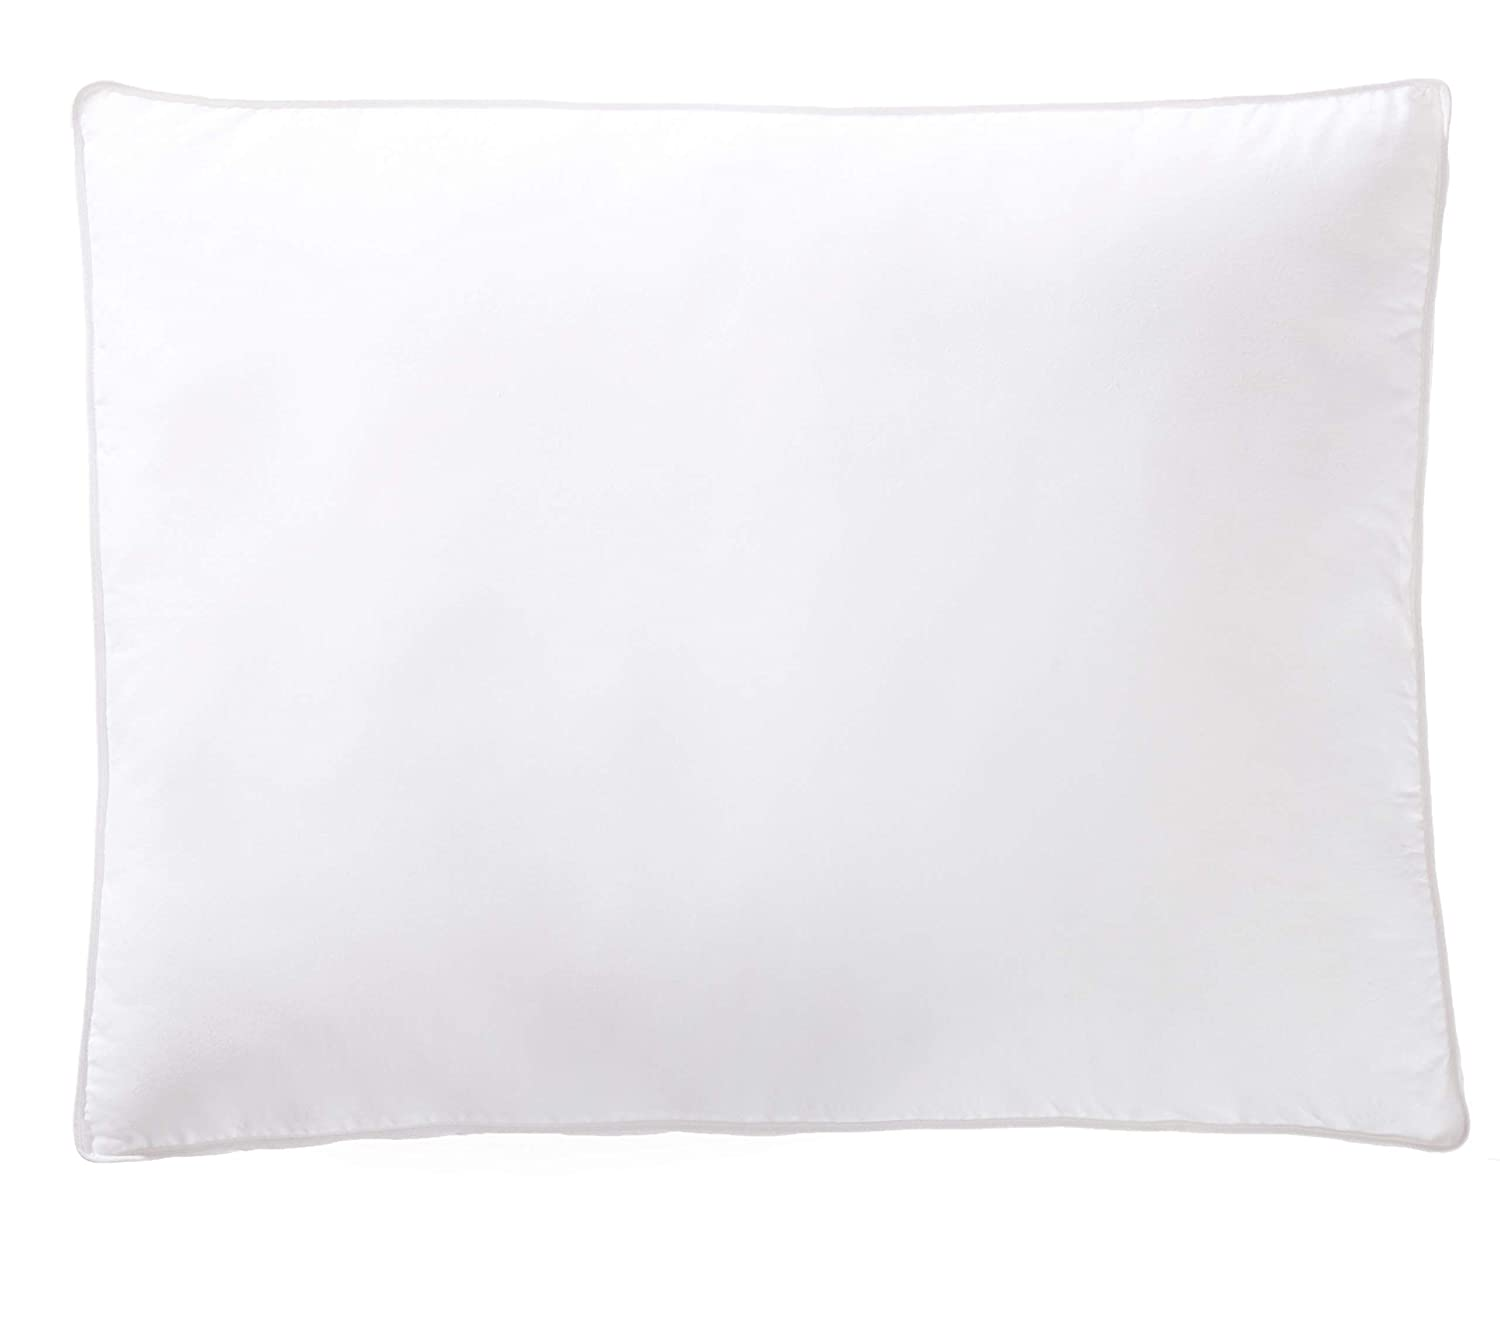 AmazonBasics Down-Alternative Gusseted Pillows with Cotton Shell - Standard, 2-Pack